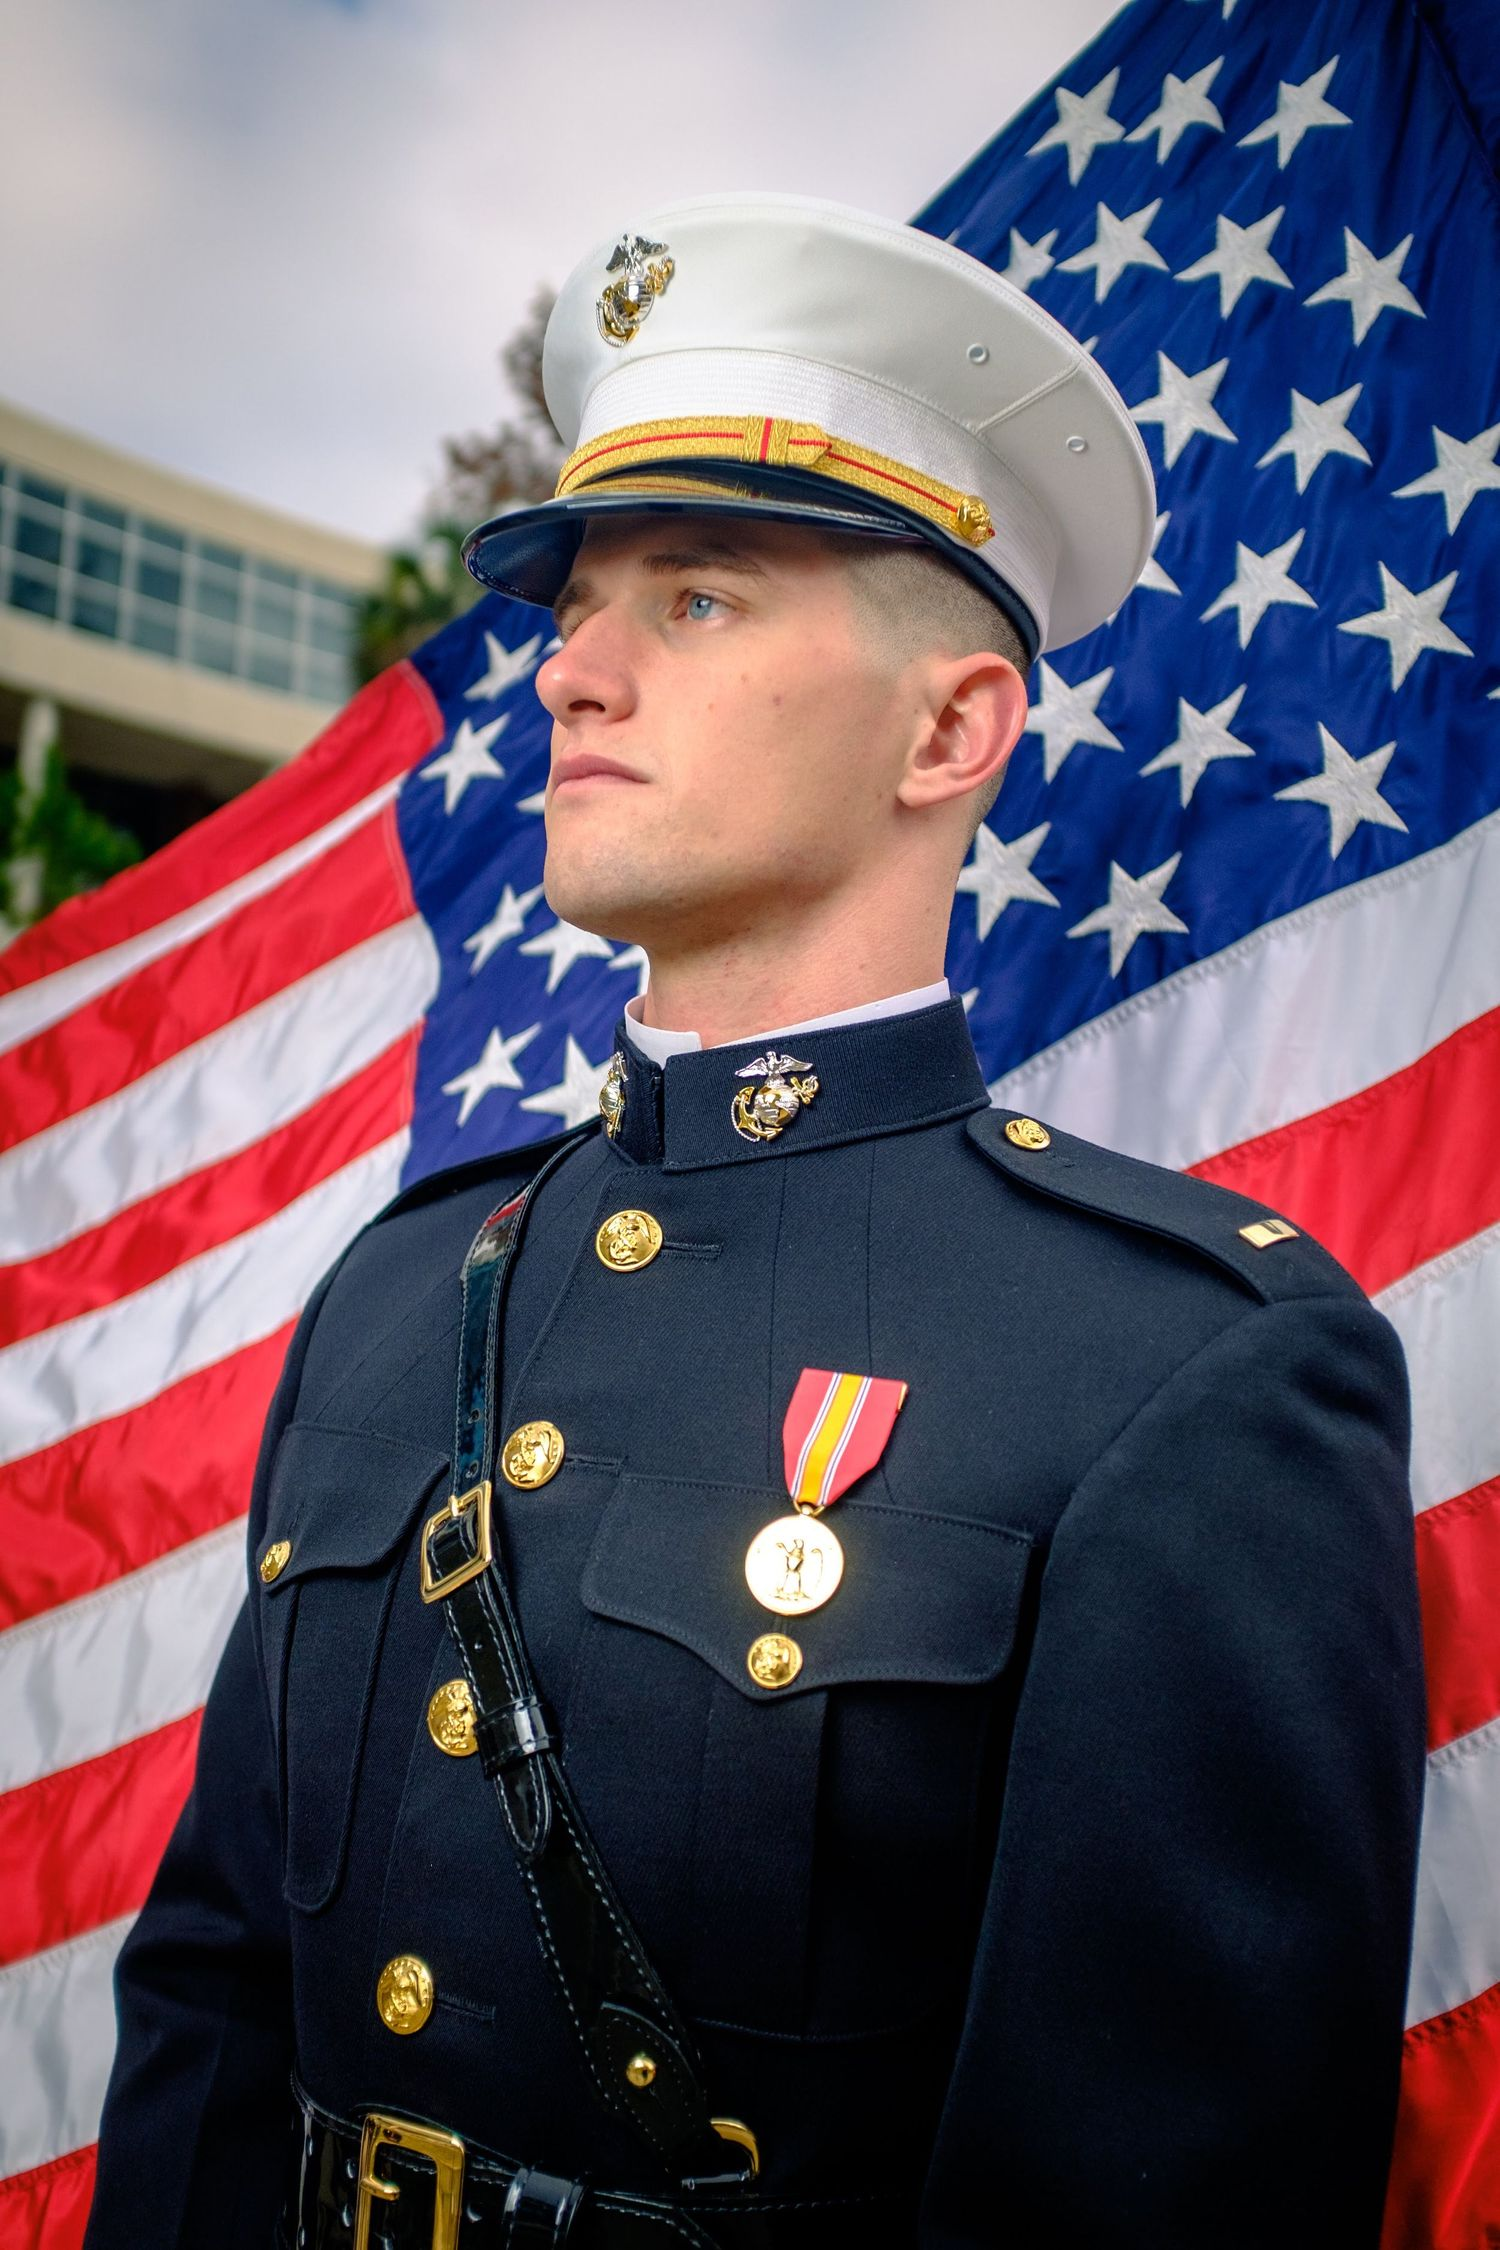 A United States Marine poses for a portrait in front of a USA flag on the University of Florida Campus.